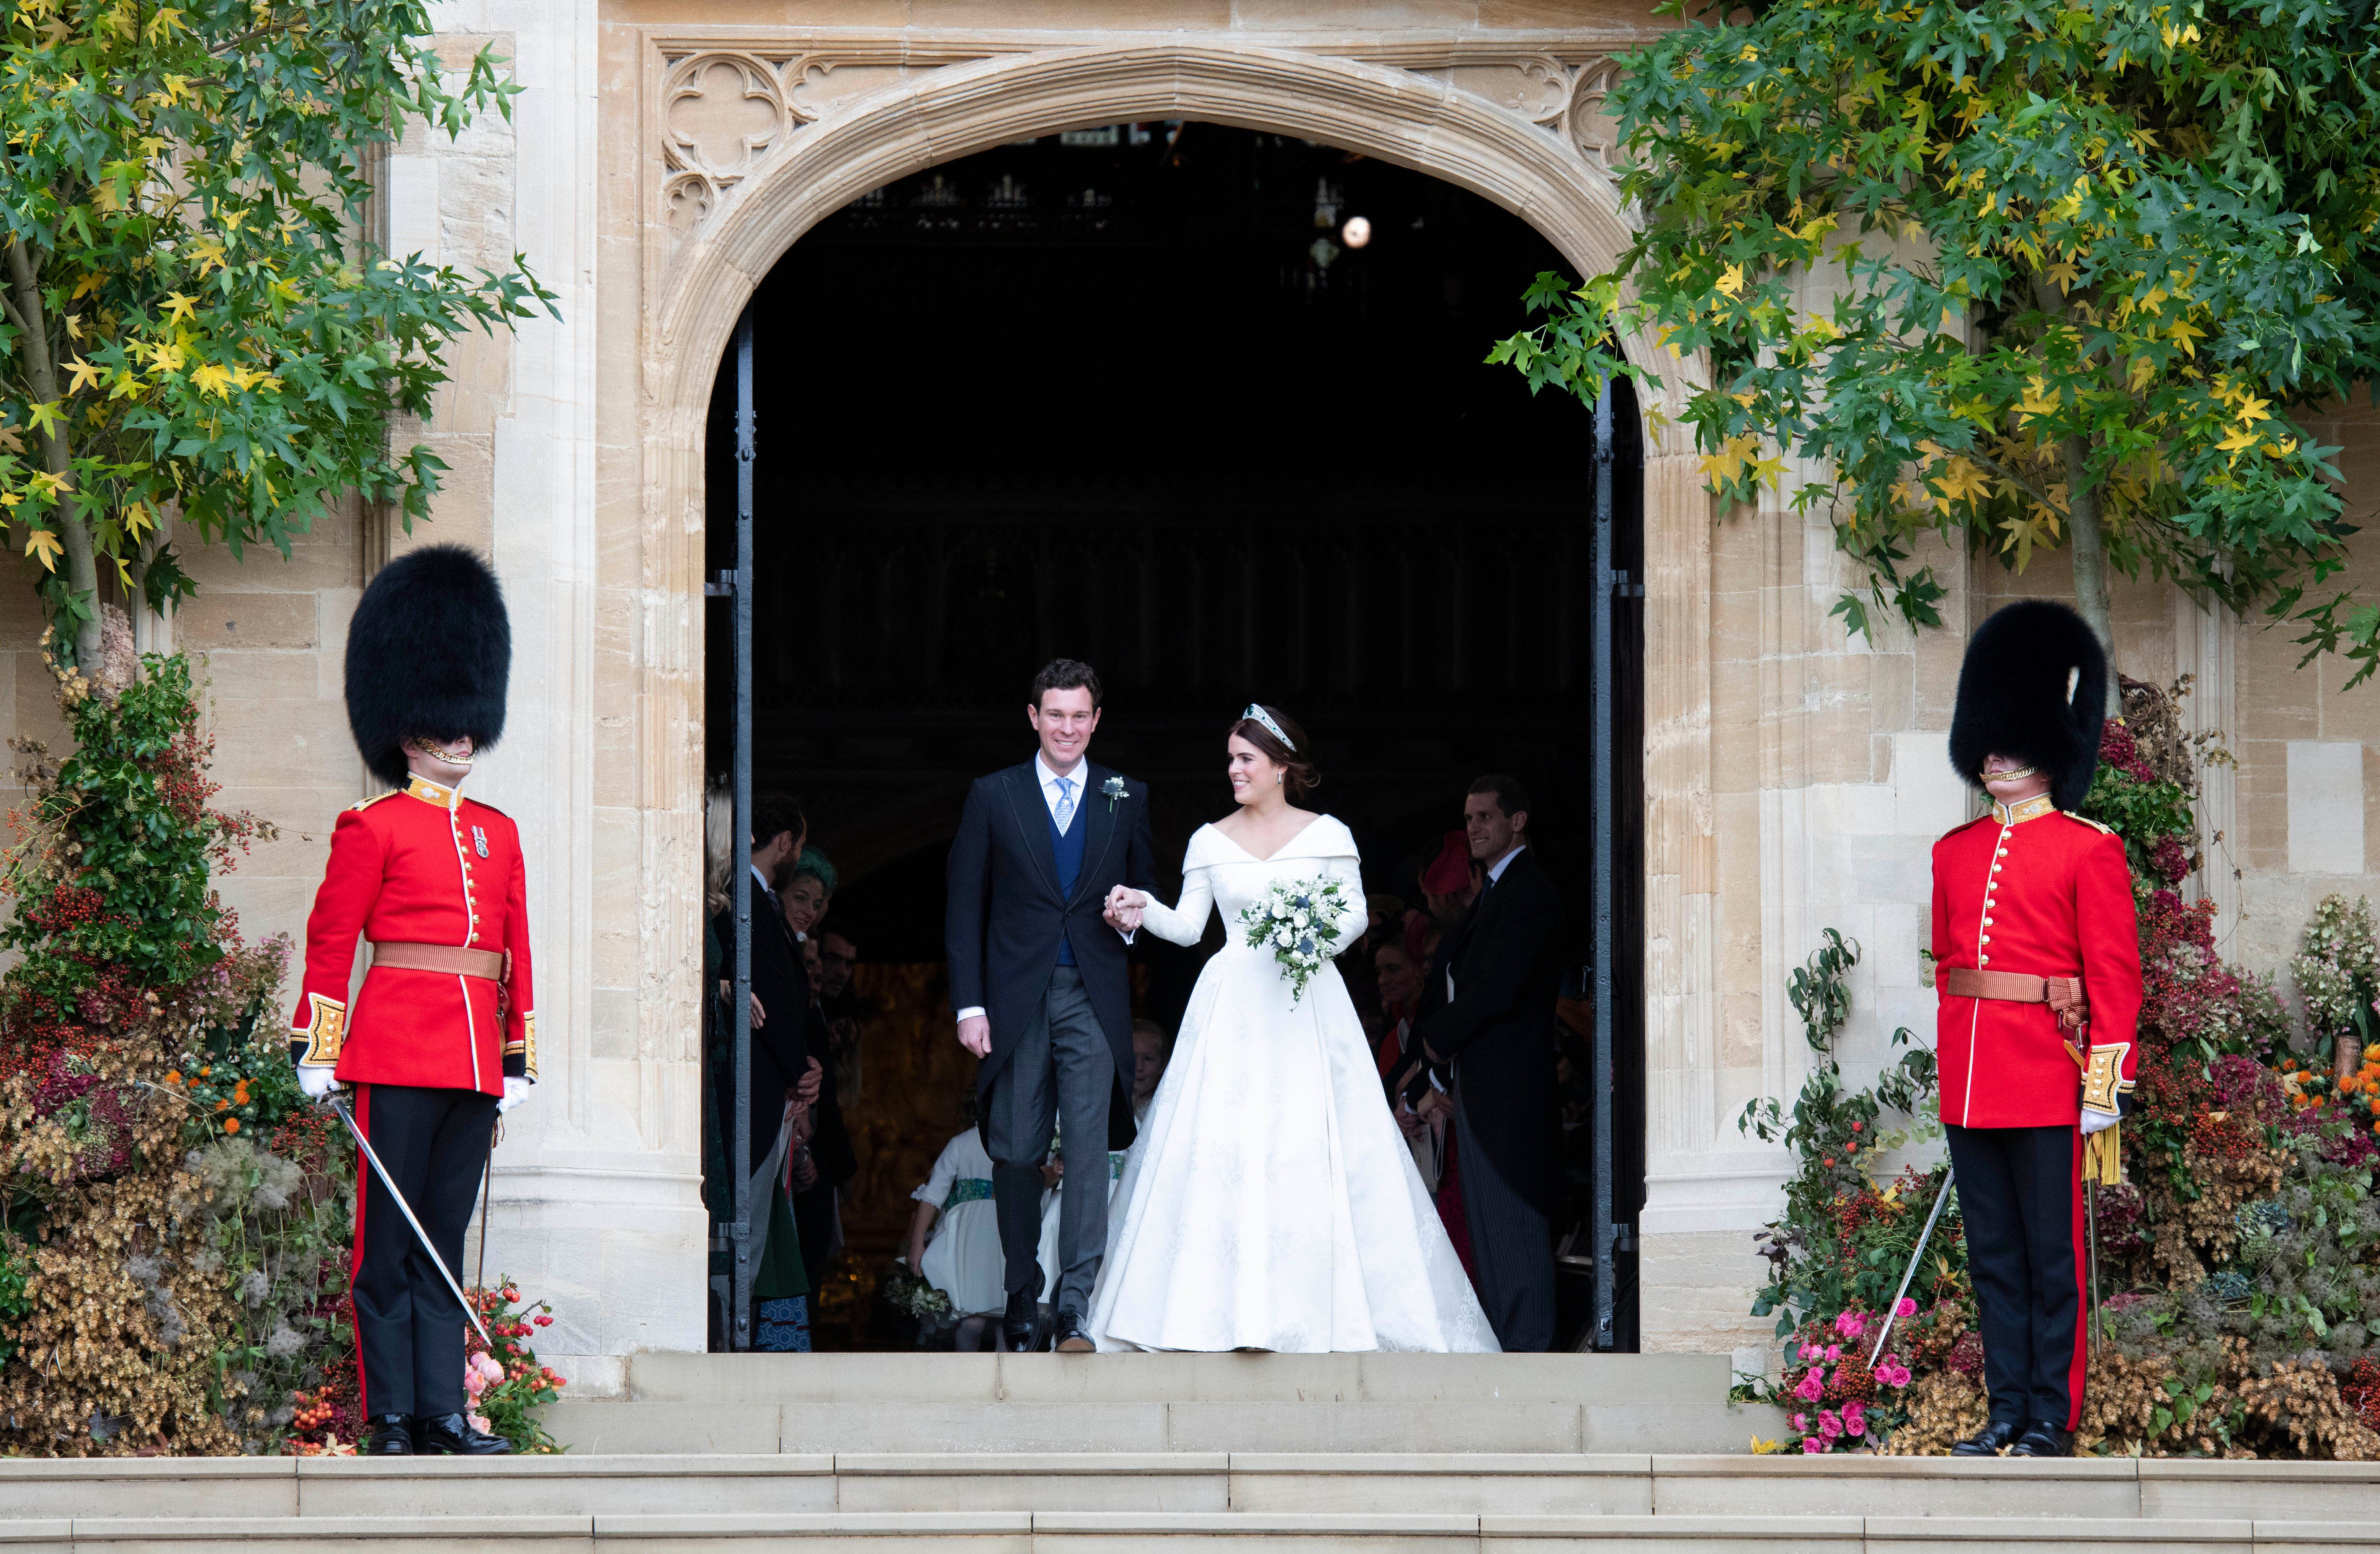 No (Royal) Baby News, No White Dresses. How Not To Upstage A Bride and Groom At Their